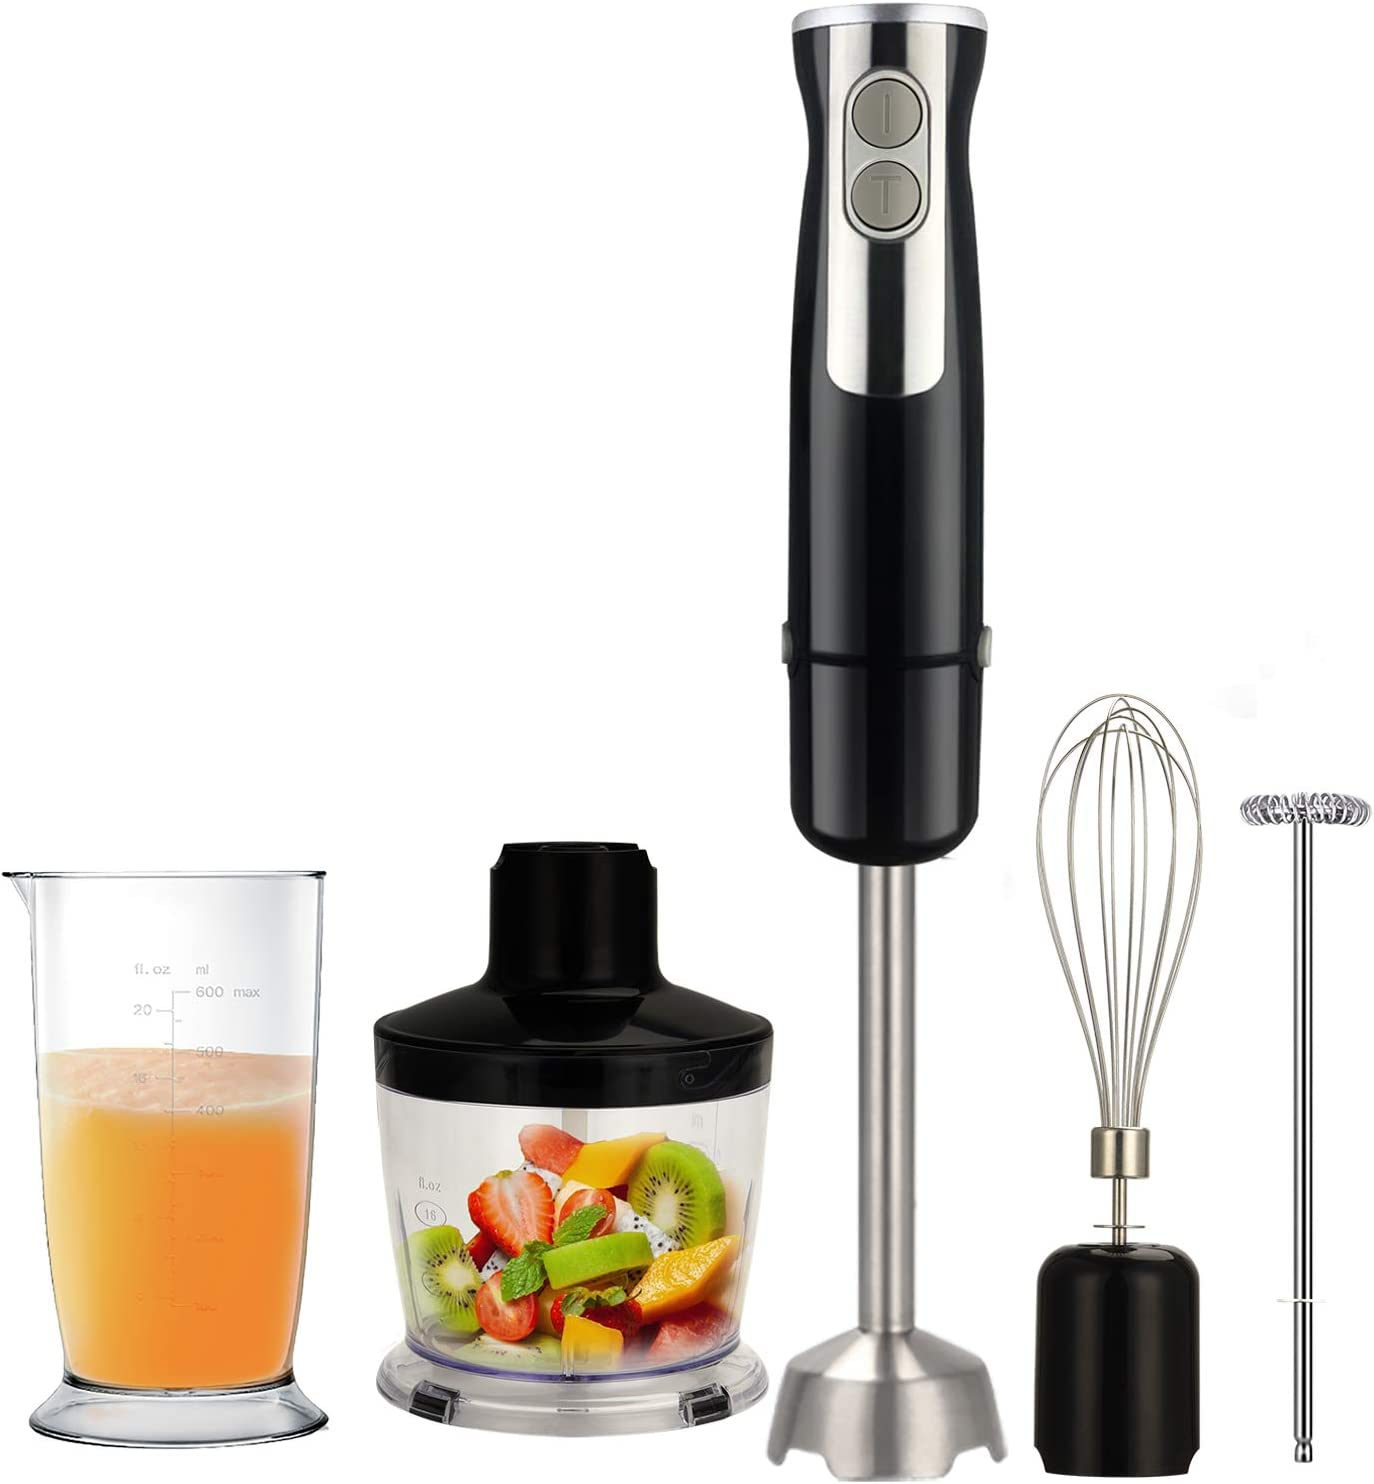 Tinyfort Immersion Hand Blender, 5-in-1 Multifunctional Stick Blender with 6 Variable Speed Control,500ml Food Processor, 600ml Mixing Beaker, Milk Frother,Egg Whisk for Smoothies, Puree Baby Food, Sauces and Soup